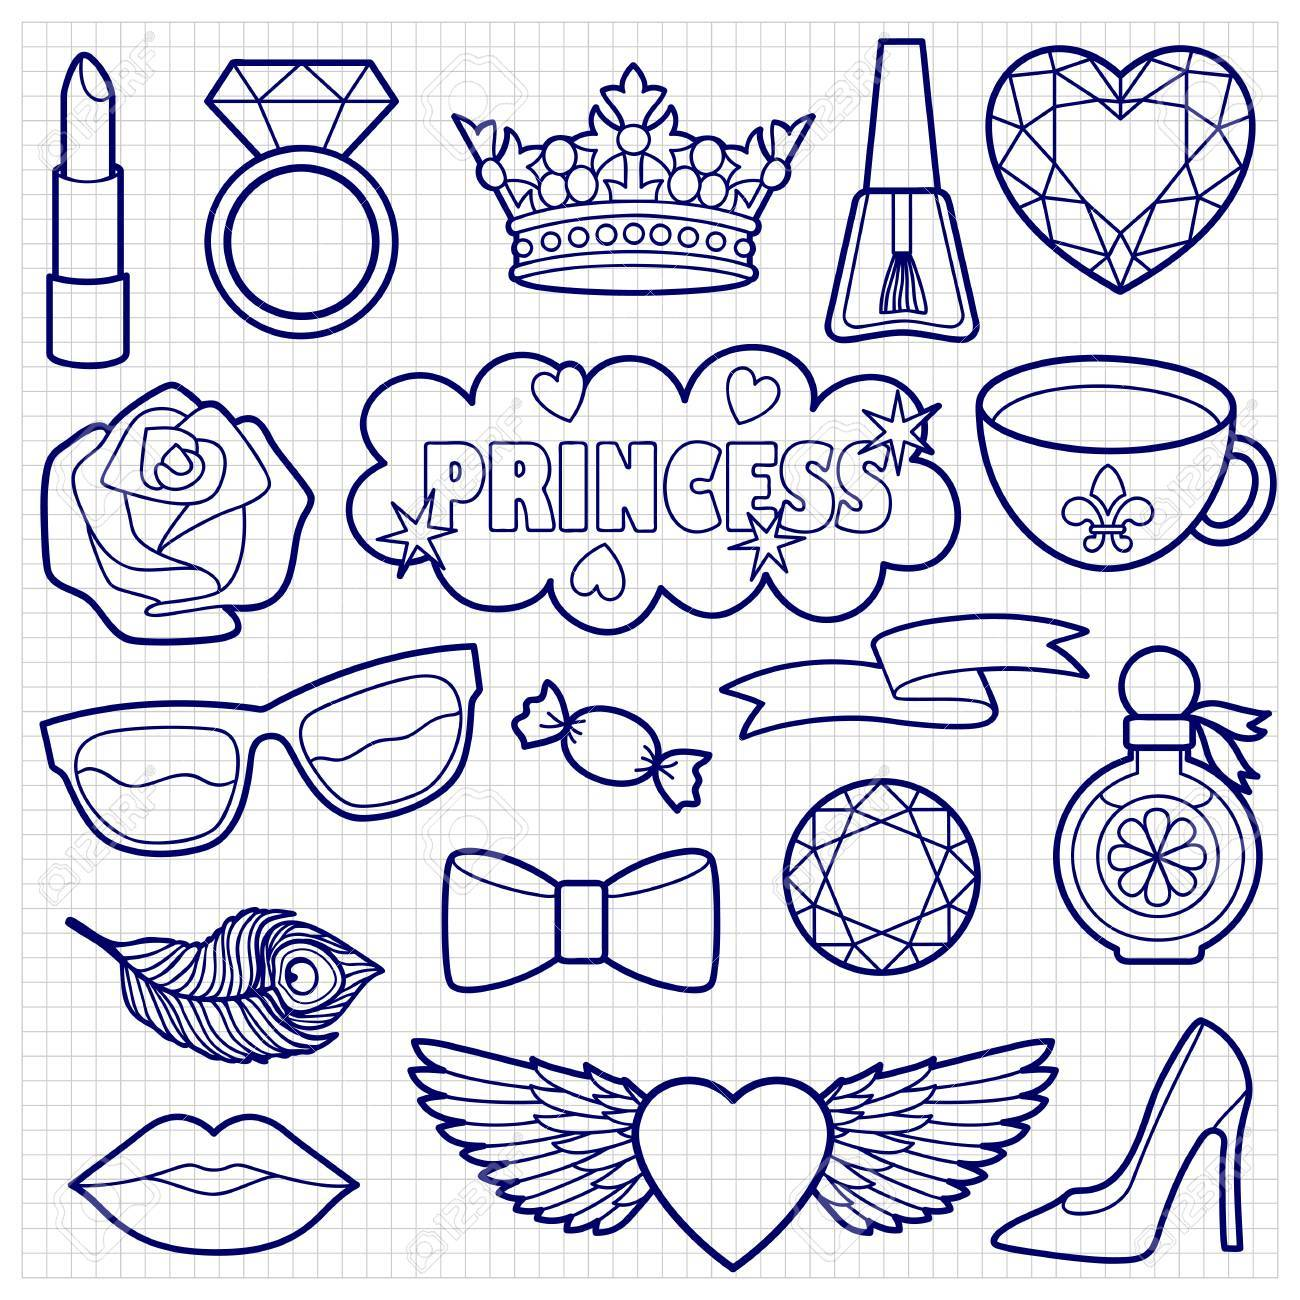 1300x1300 Princess Fashion Patches. Stickers Sketch On Squared Paper